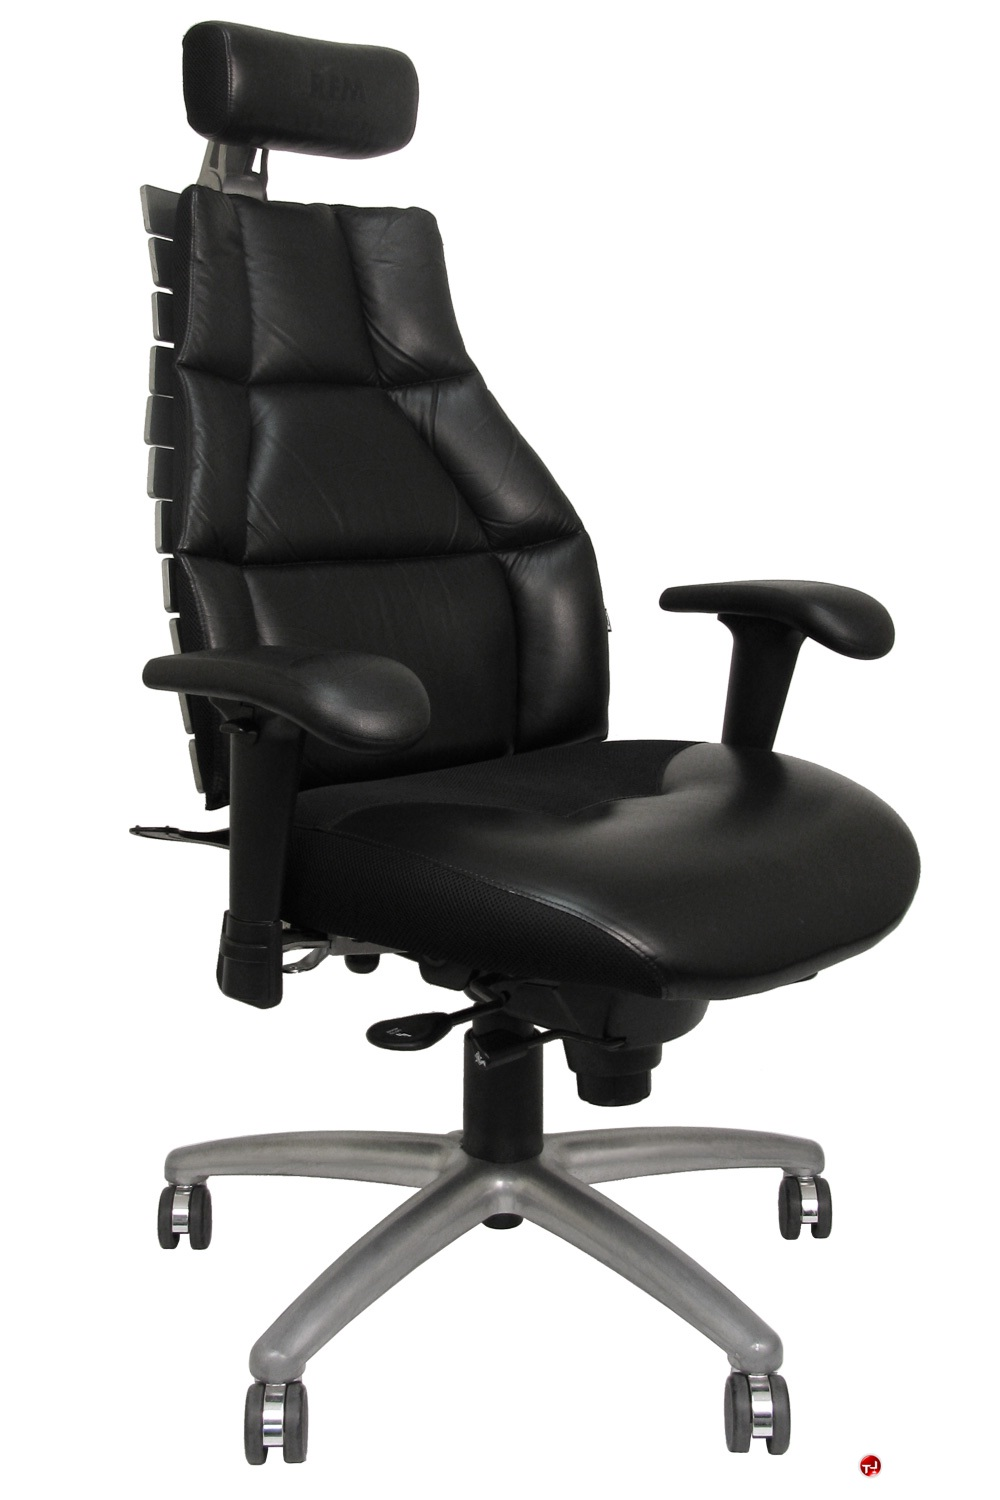 office chair with headrest oak rocking chairs the leader rfm verte 2200 high back executive picture of adjustable